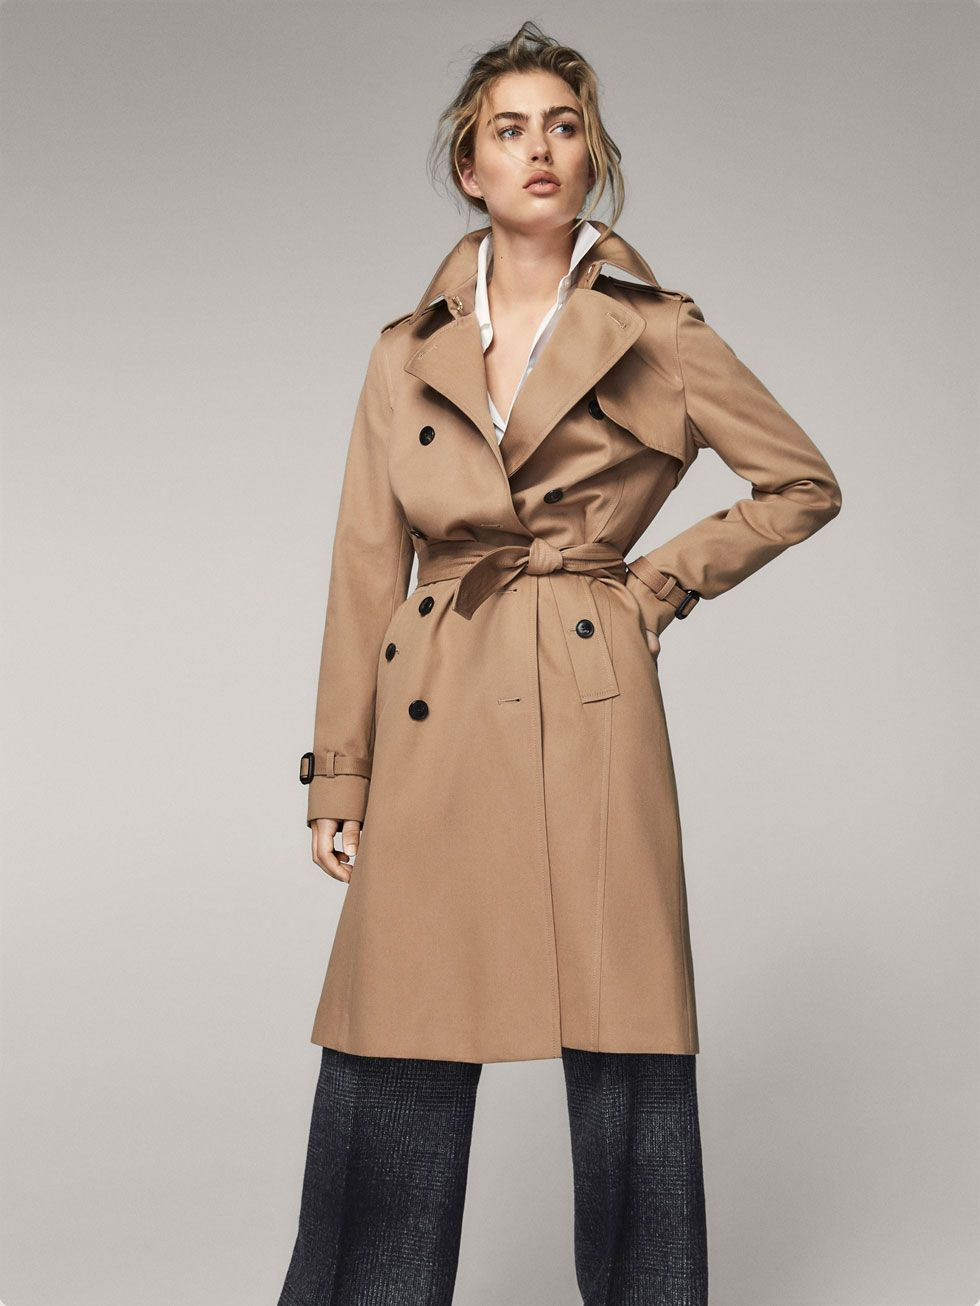 33abc0a816 CLASSIC CAMEL TRENCH COAT - Women - Massimo Dutti | style in 2019 ...